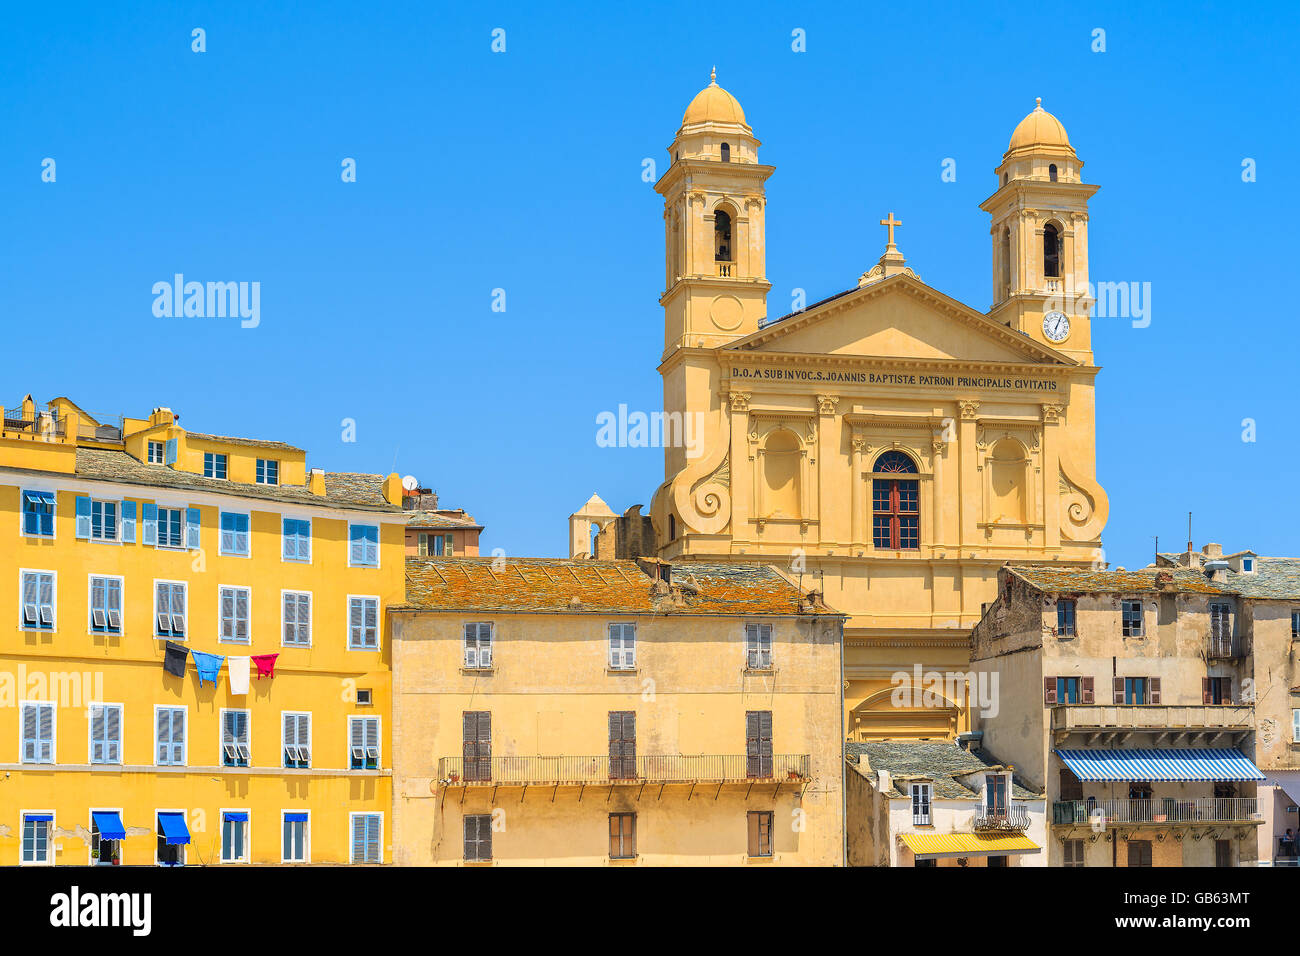 Cafe in the vieux port terra vecchia bastia corsica france stock - A View Of Cathedral Building In Bastia Port Corsica Island France Stock Image